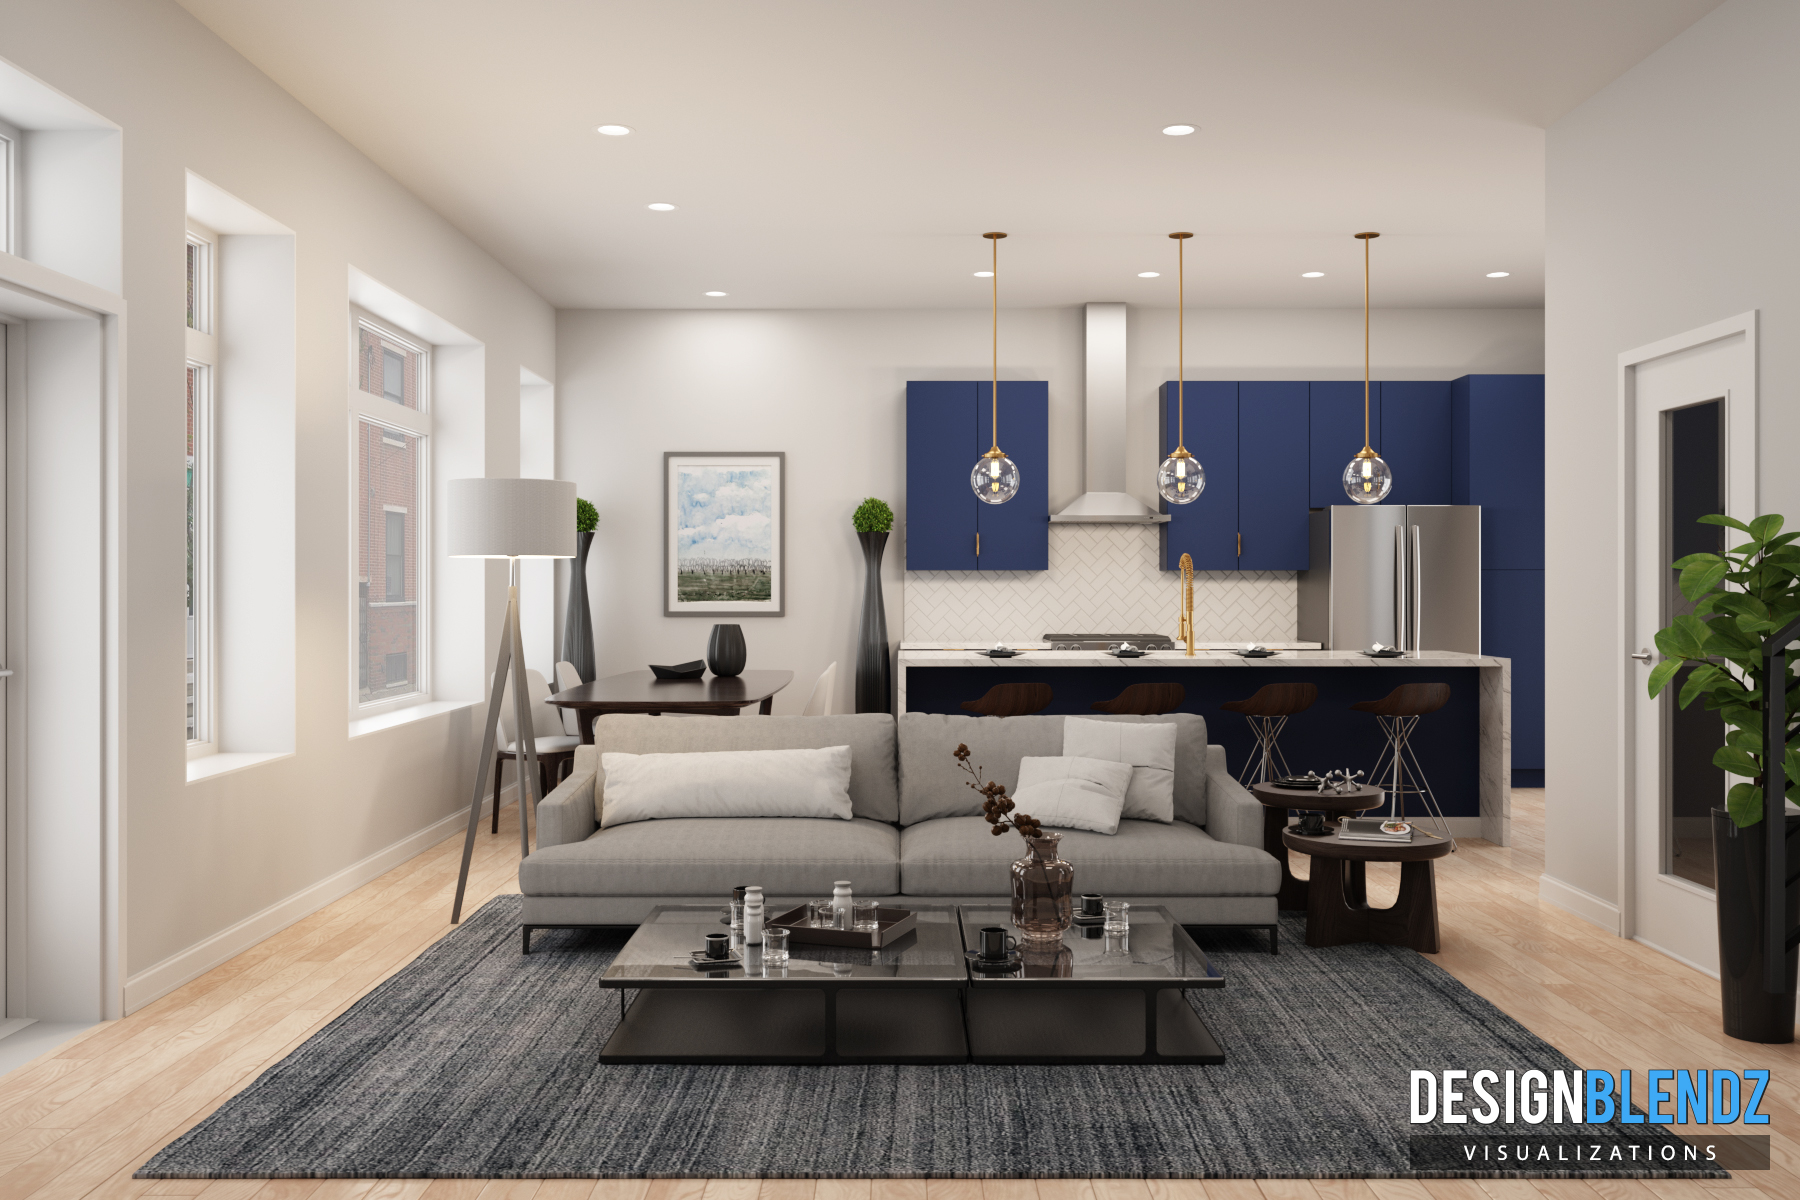 9 Reasons You Should Incorporate 3D Renders Into Your Marketing Plan